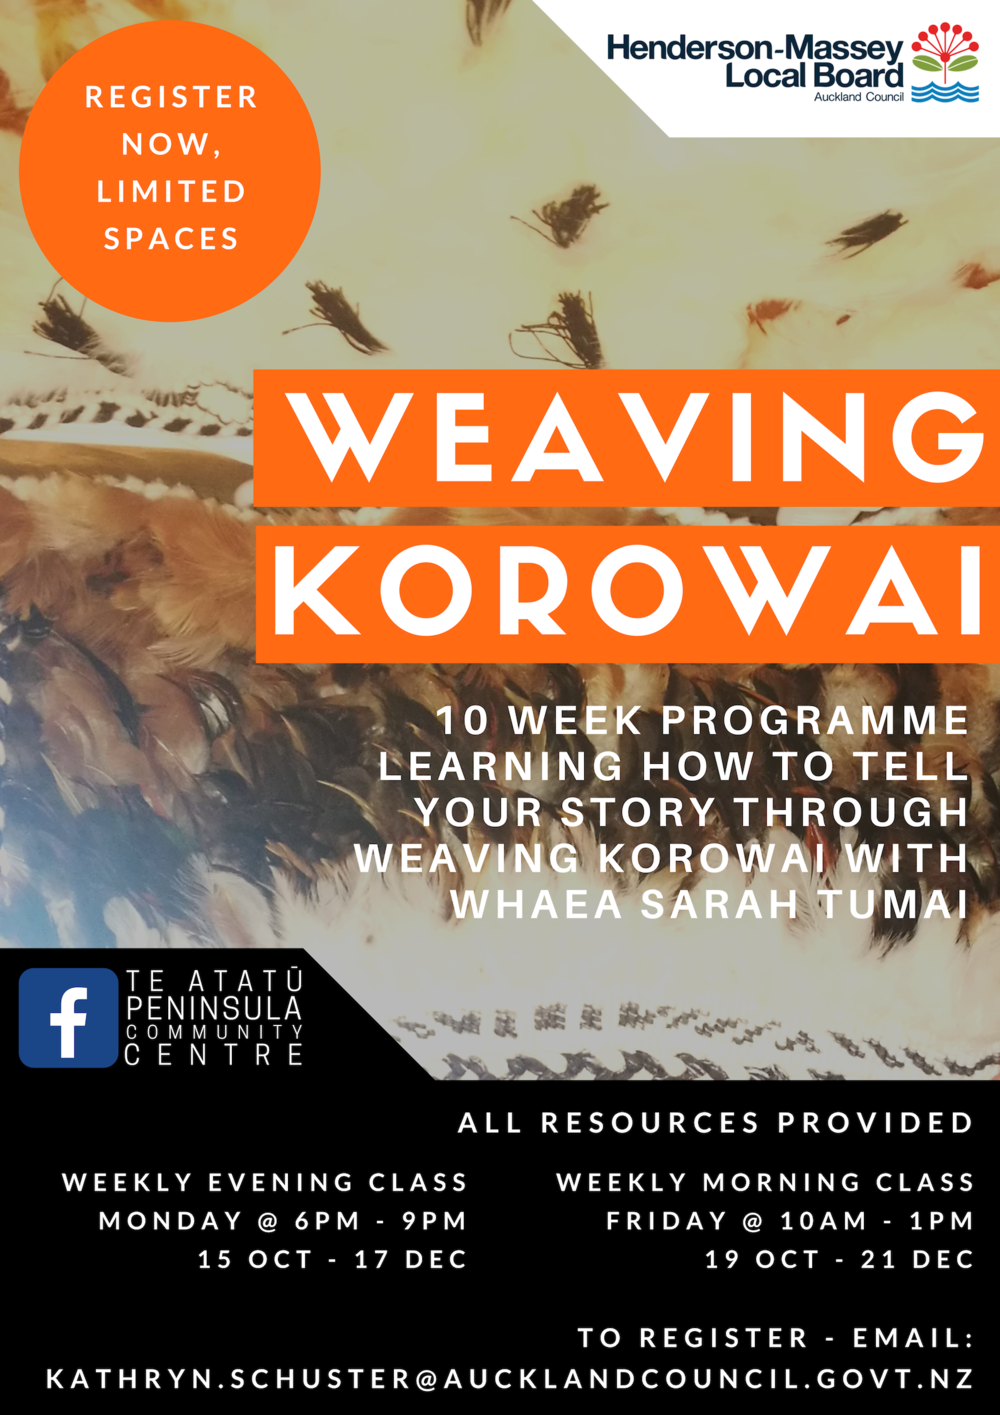 Copy of Weaving Korowai (3).png